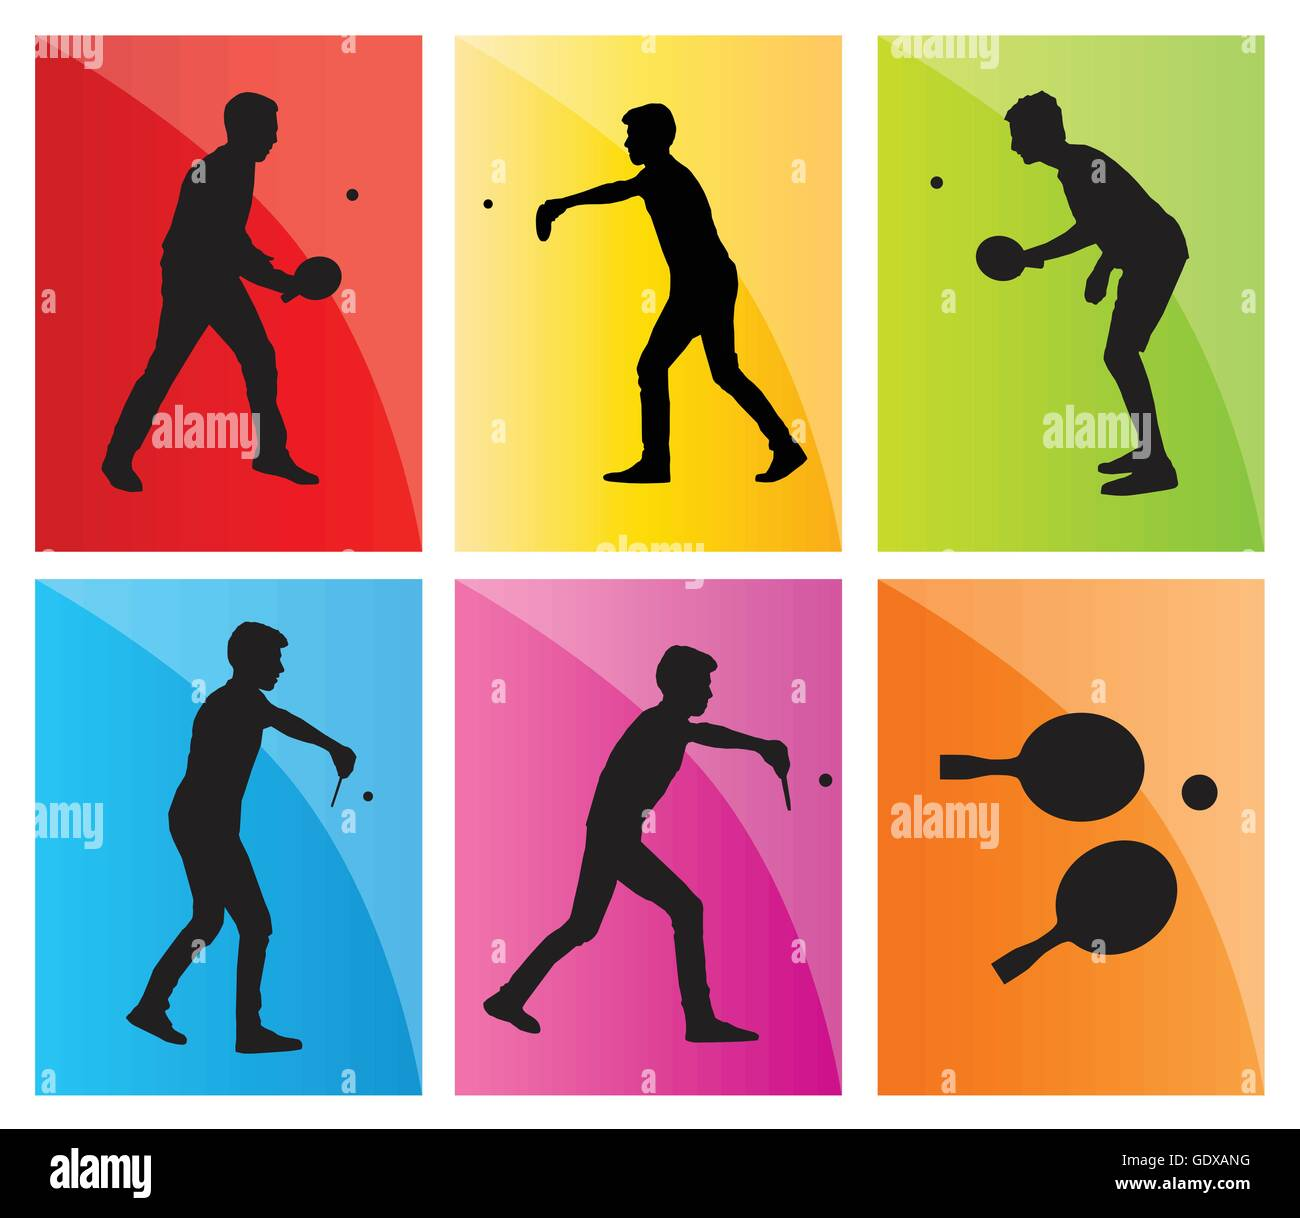 Table tennis player silhouette ping pong set vector background for poster  sc 1 st  Alamy & Table tennis player silhouette ping pong set vector background for ...